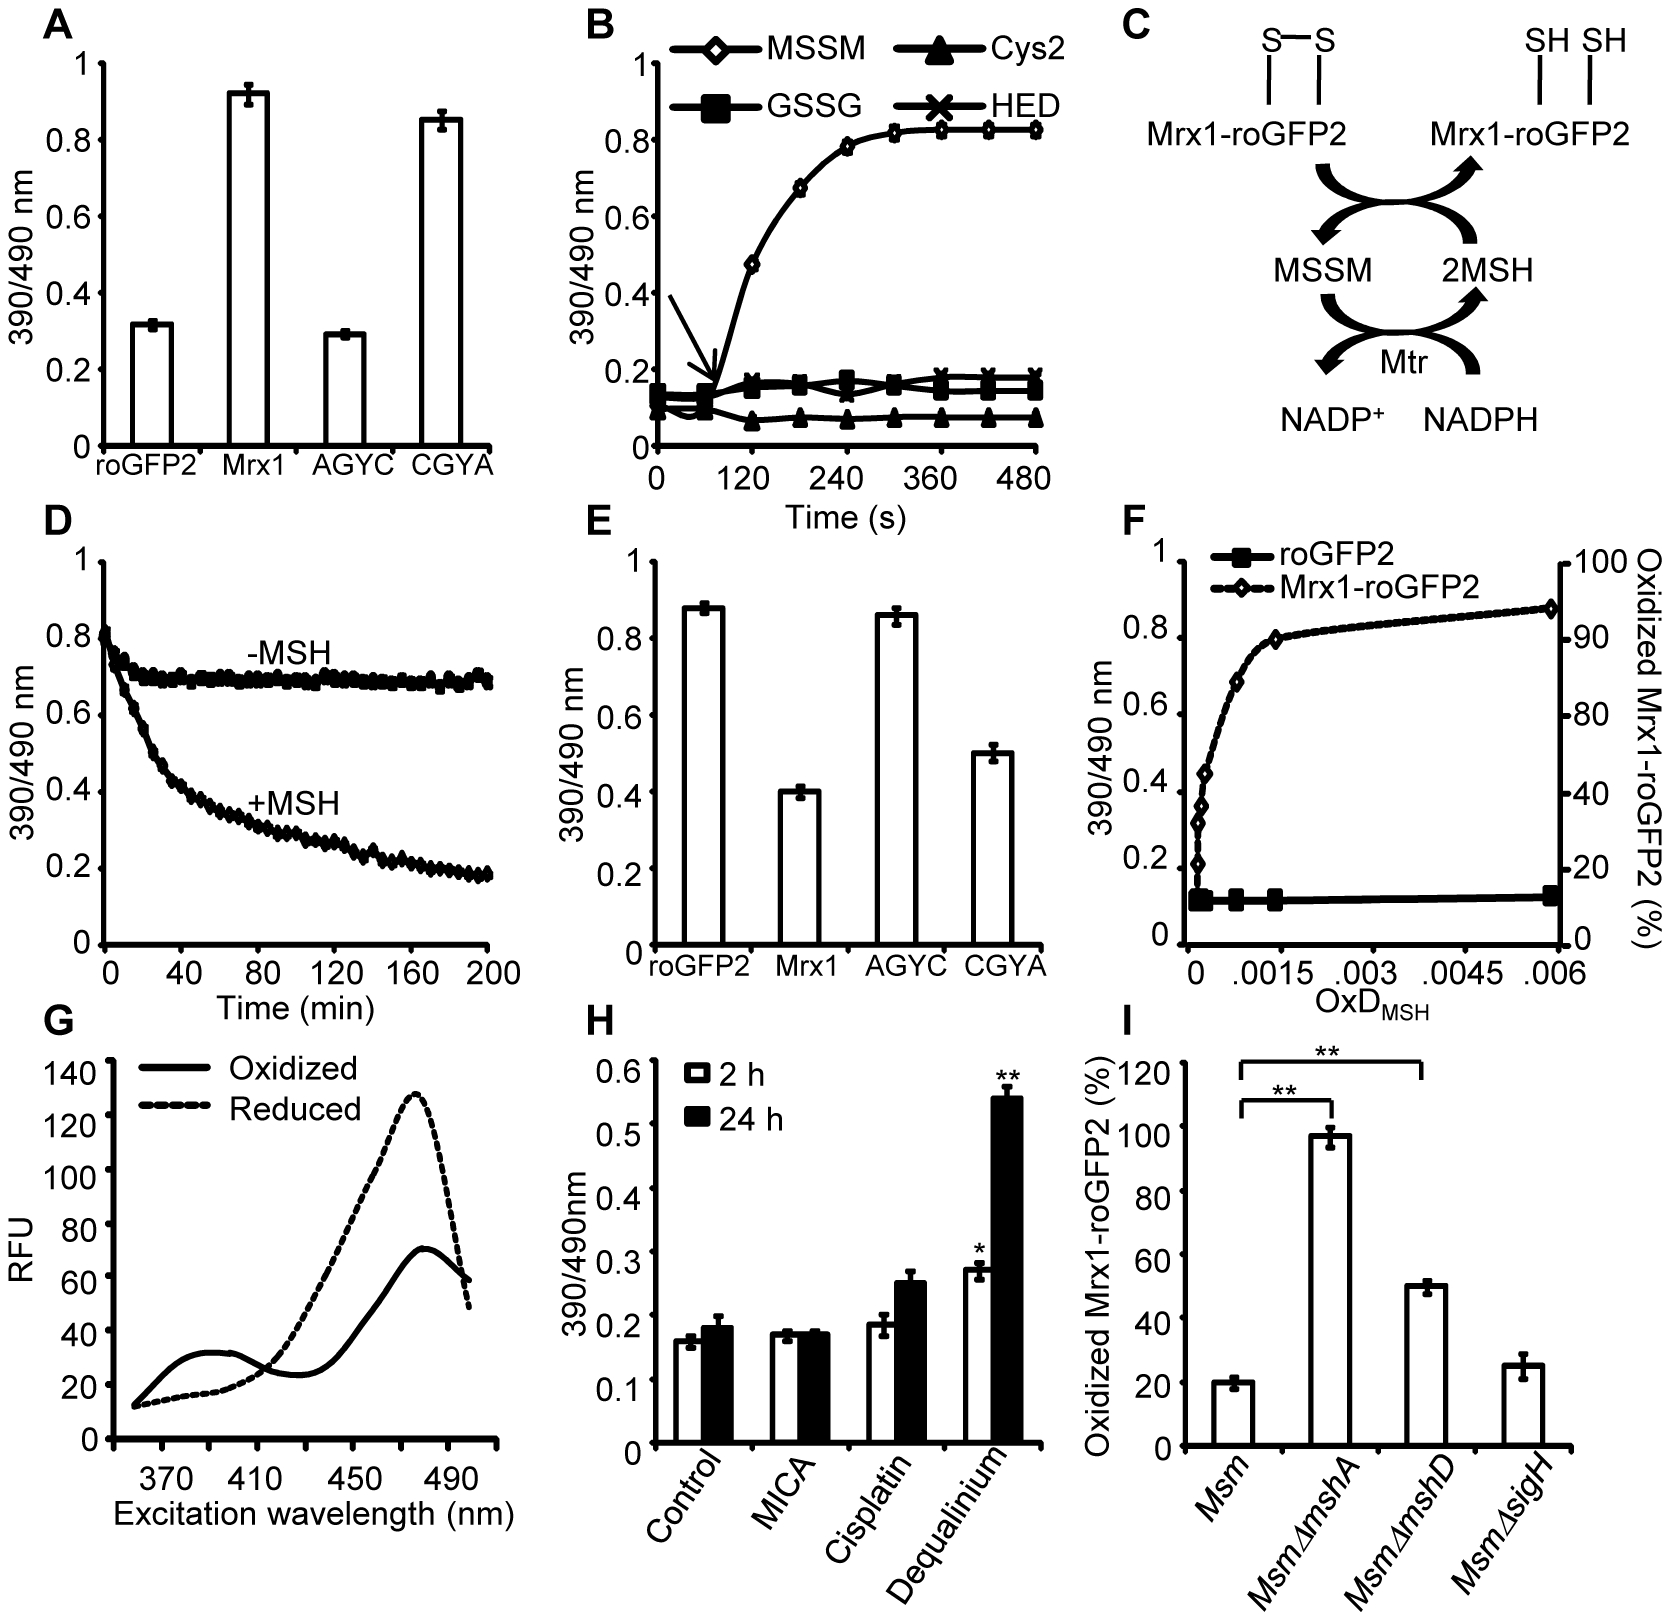 Mrx1 catalyzes specific equilibration between mycothiol redox system and roGFP2 <i>in vitro</i> and <i>in vivo</i>.